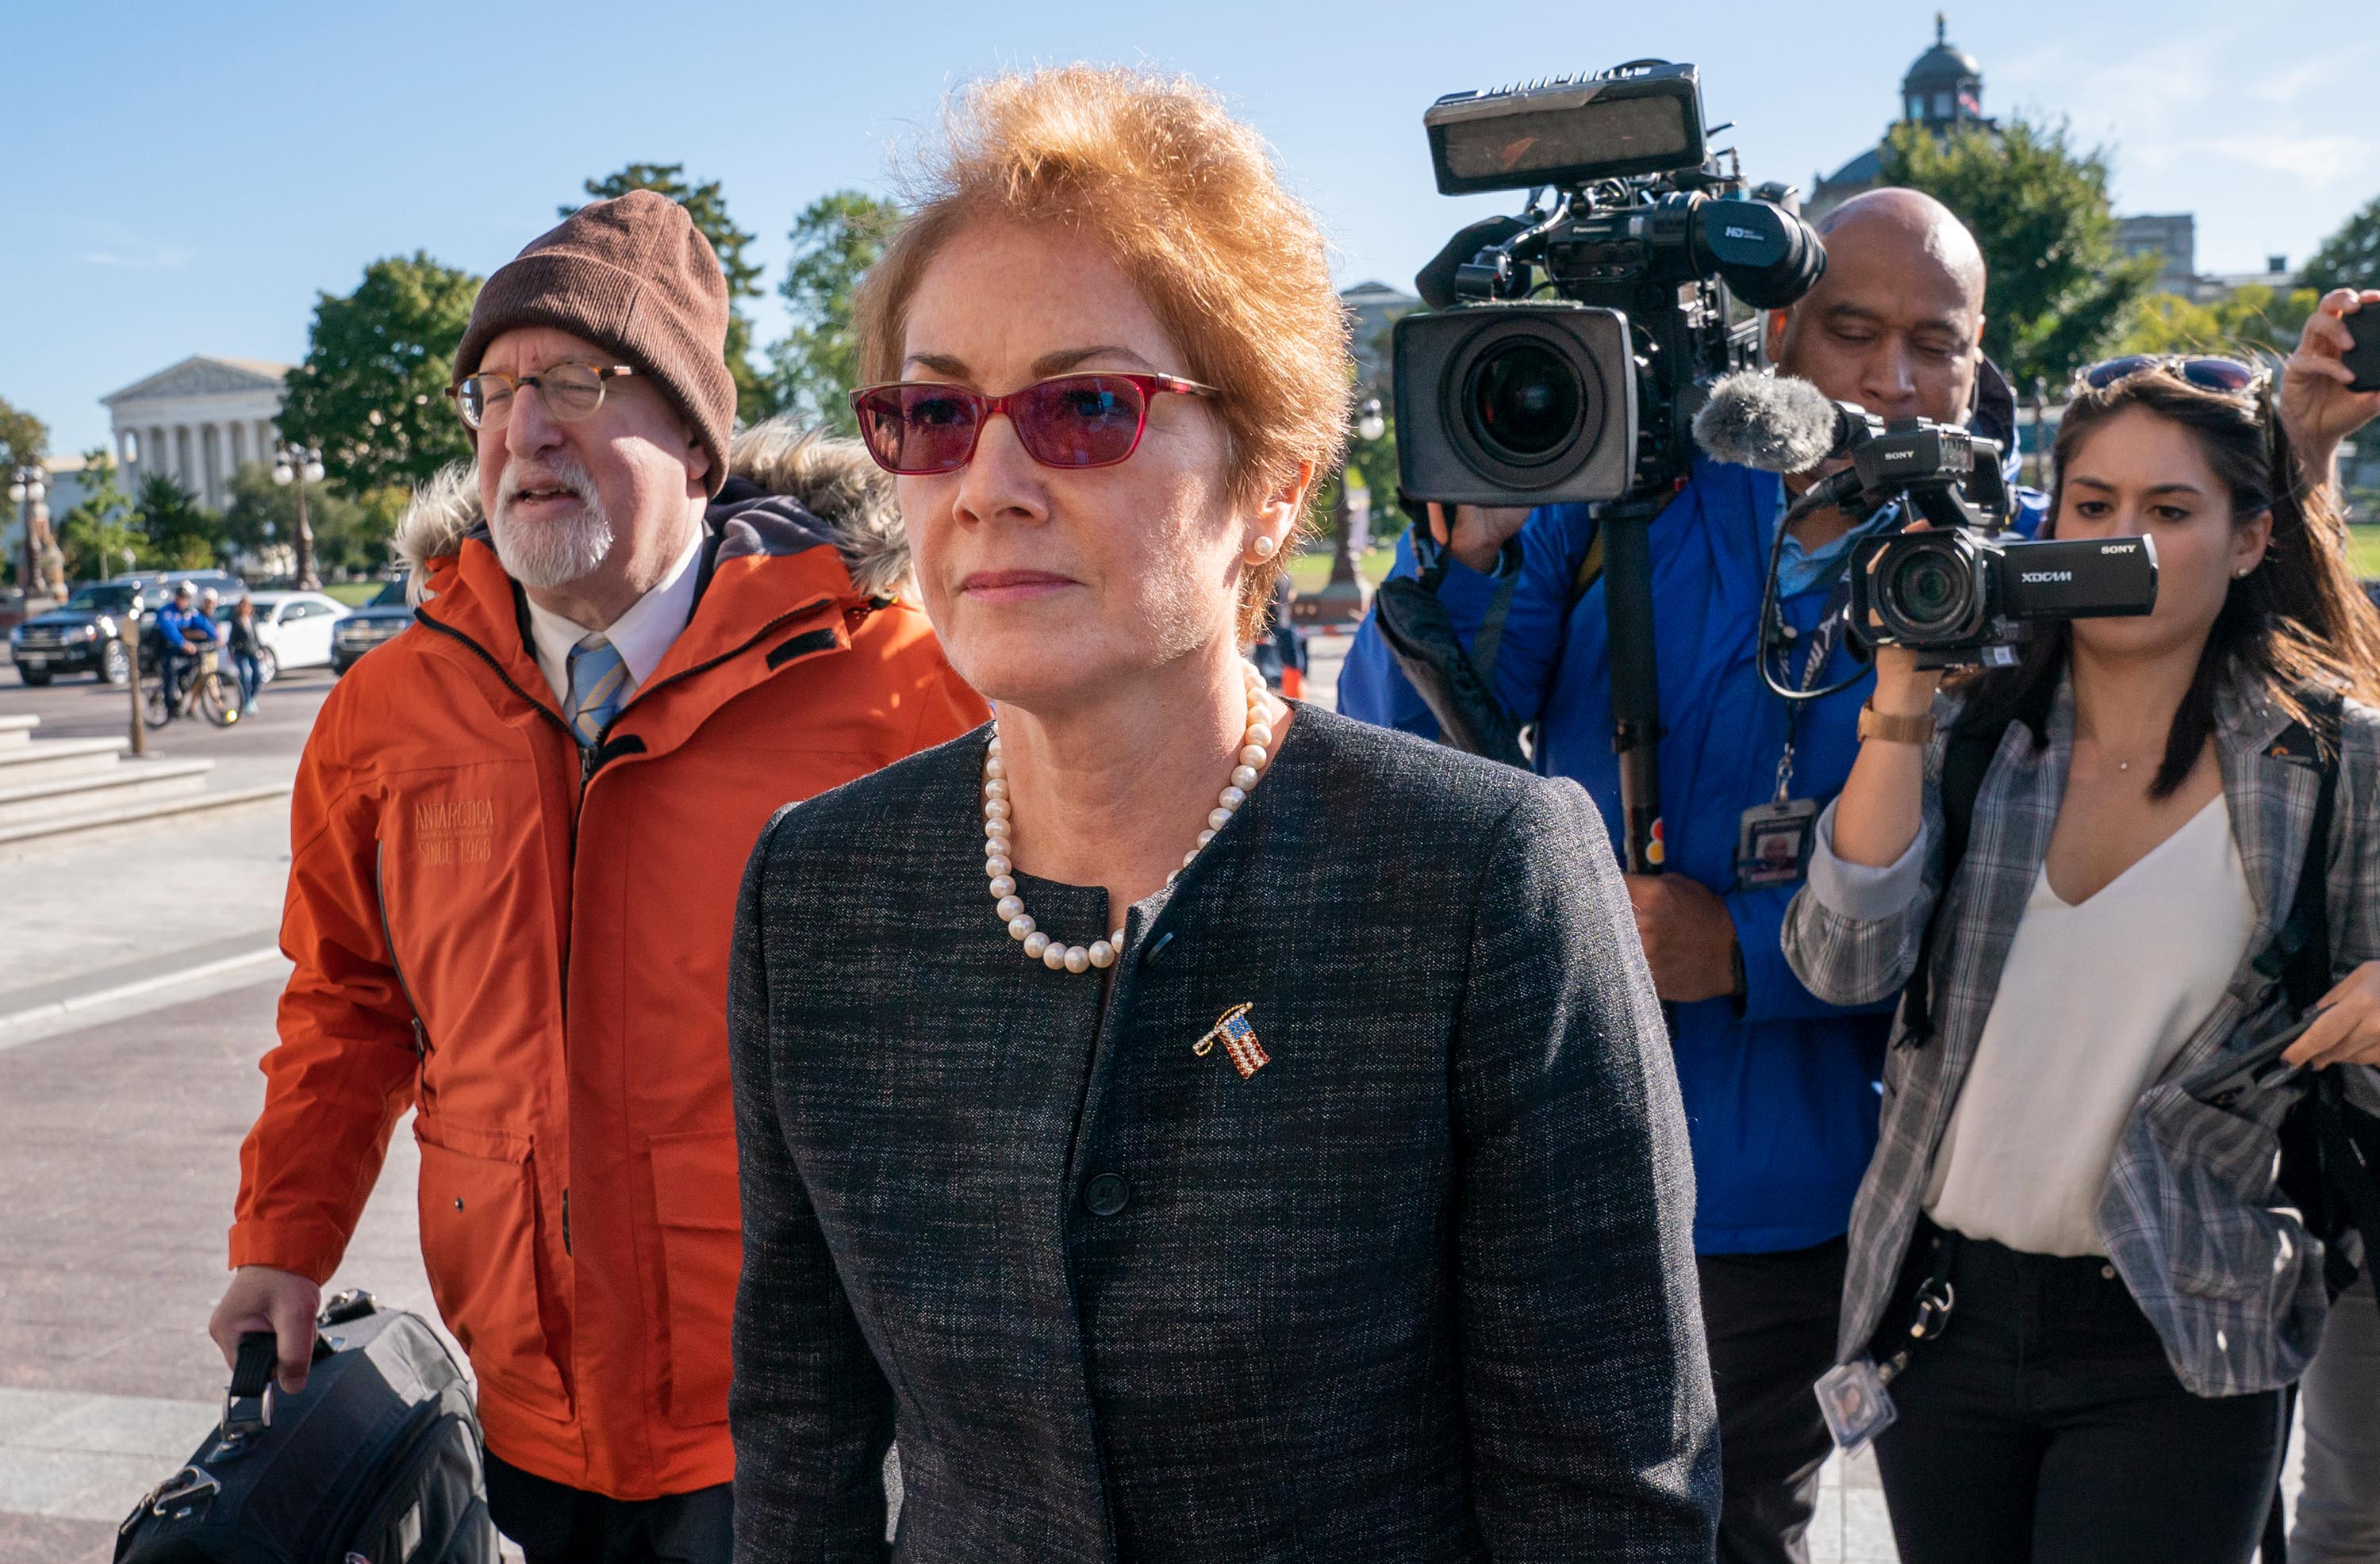 Former US Ambassador to Ukraine, Marie Yovanovitch, arrives on Capitol Hill, on Oct. 11.